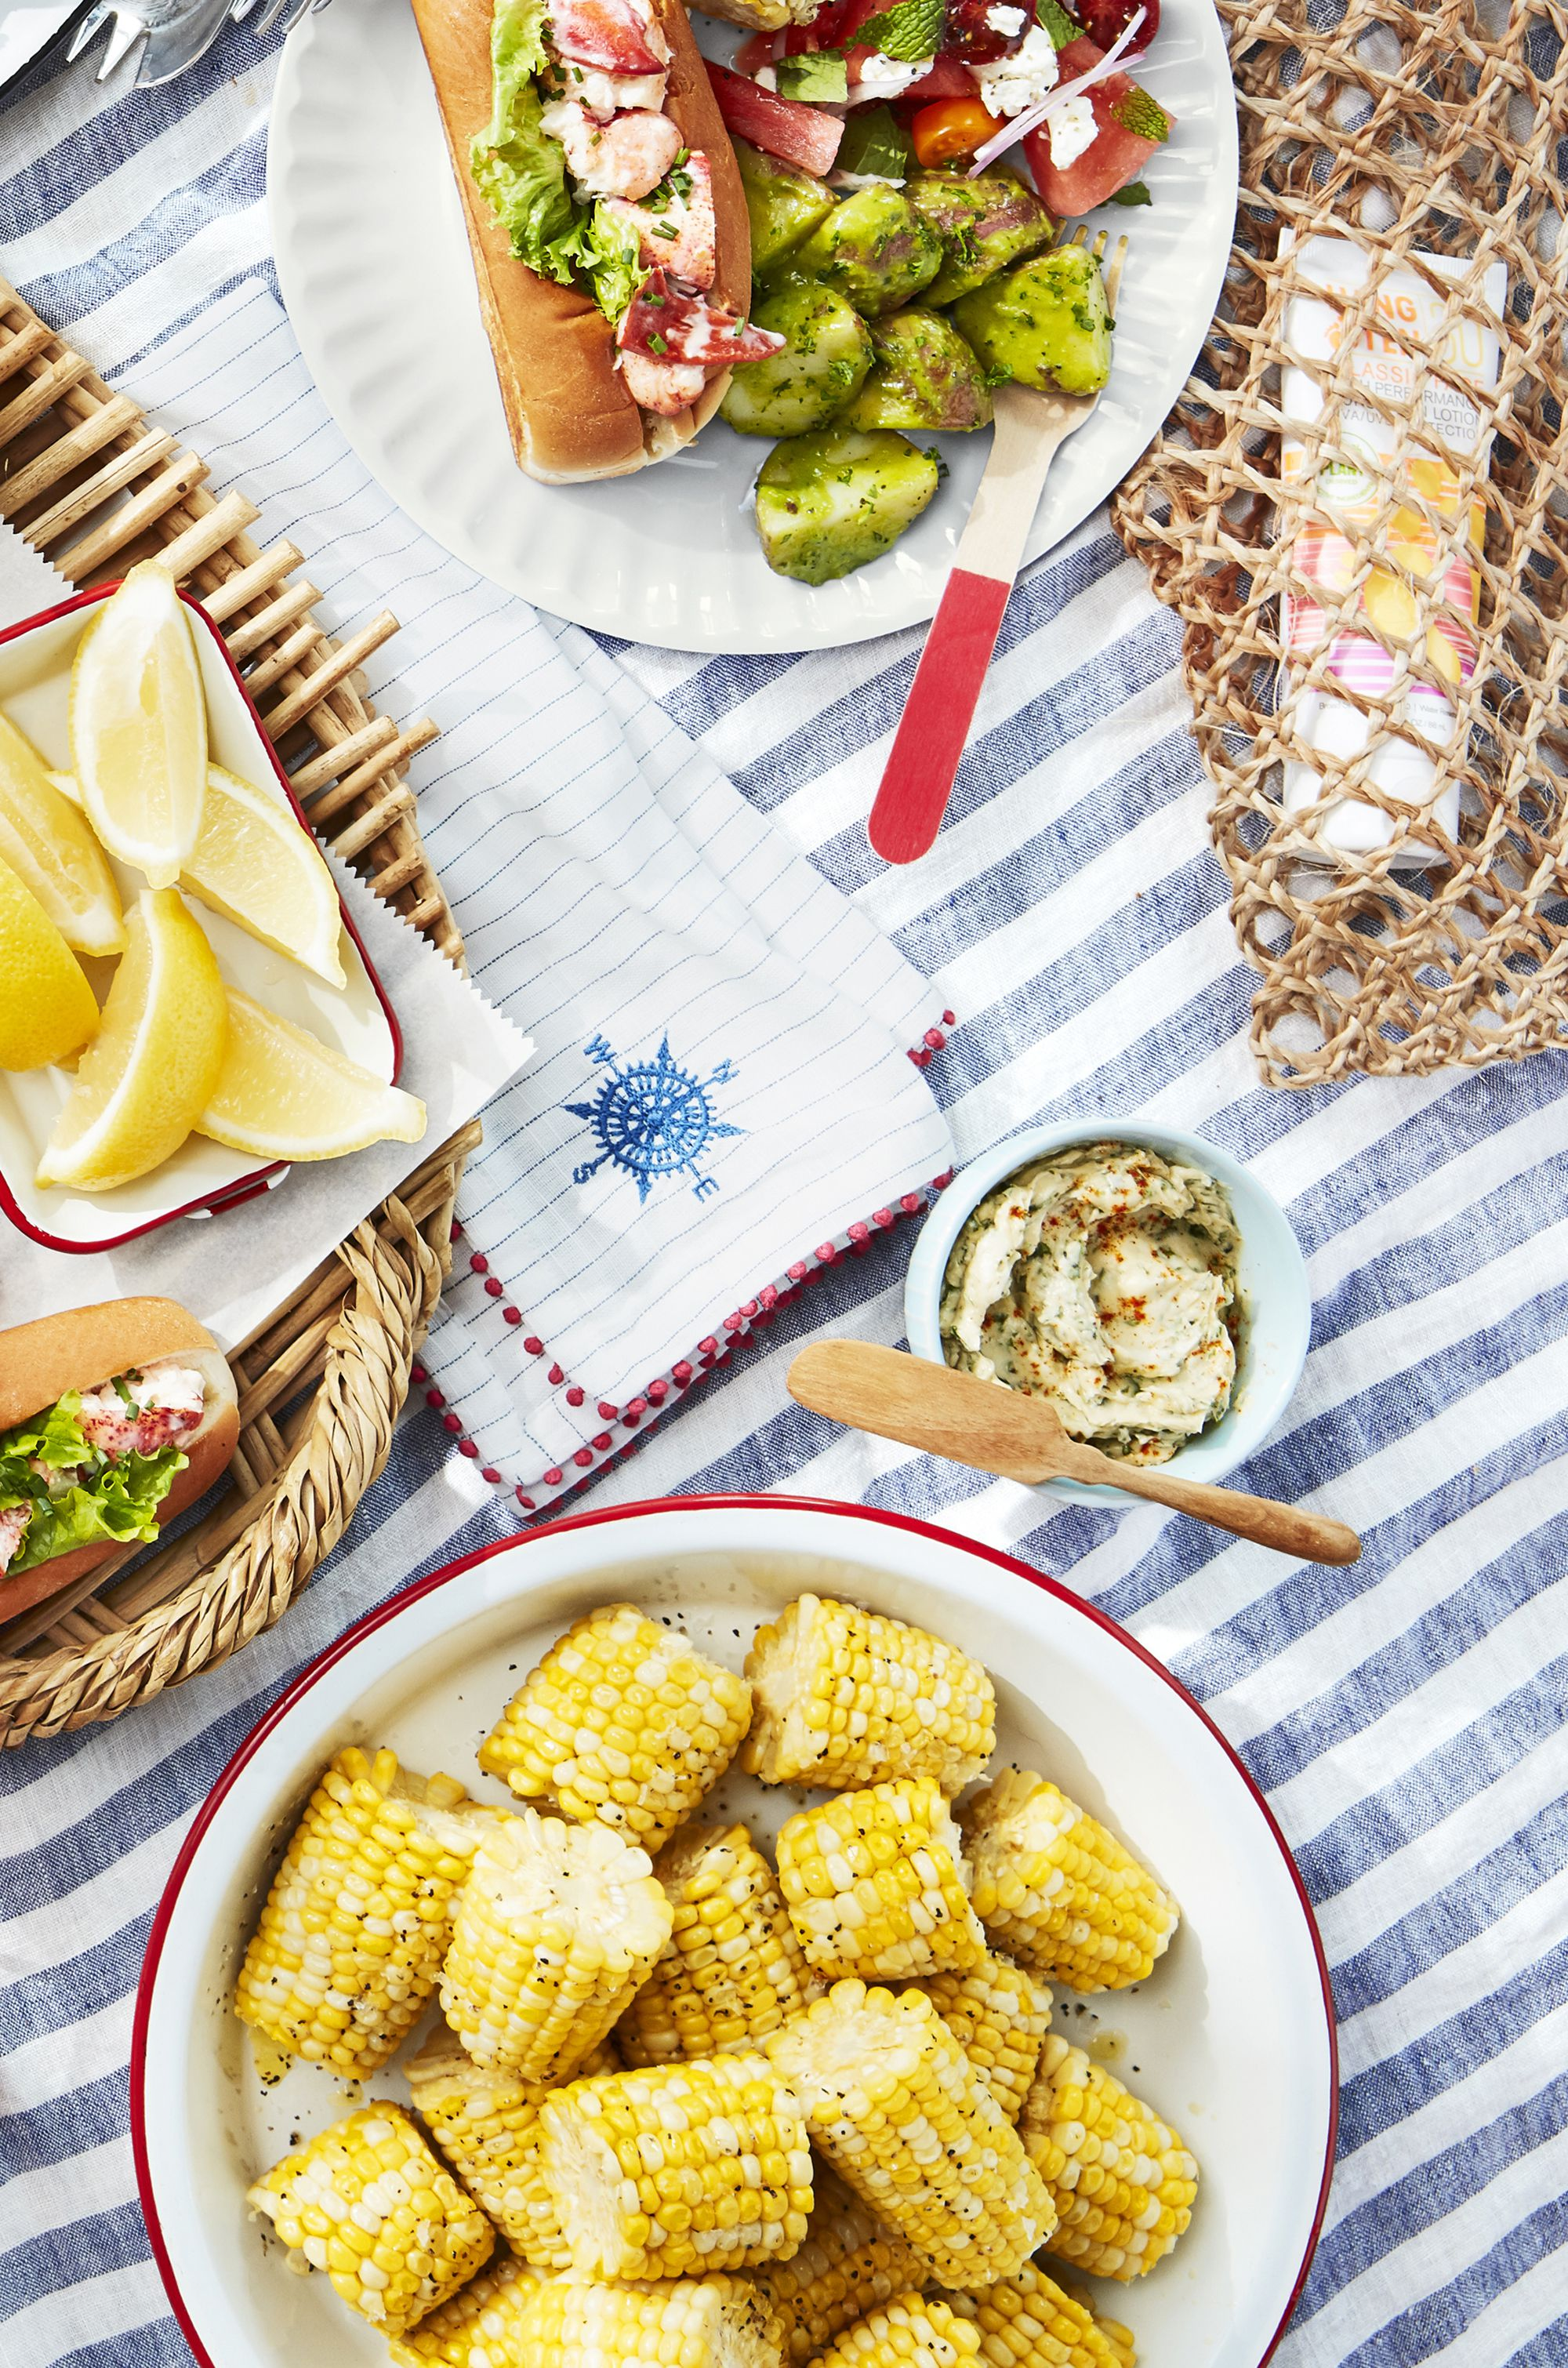 Corn Cobettes With Basil Butter